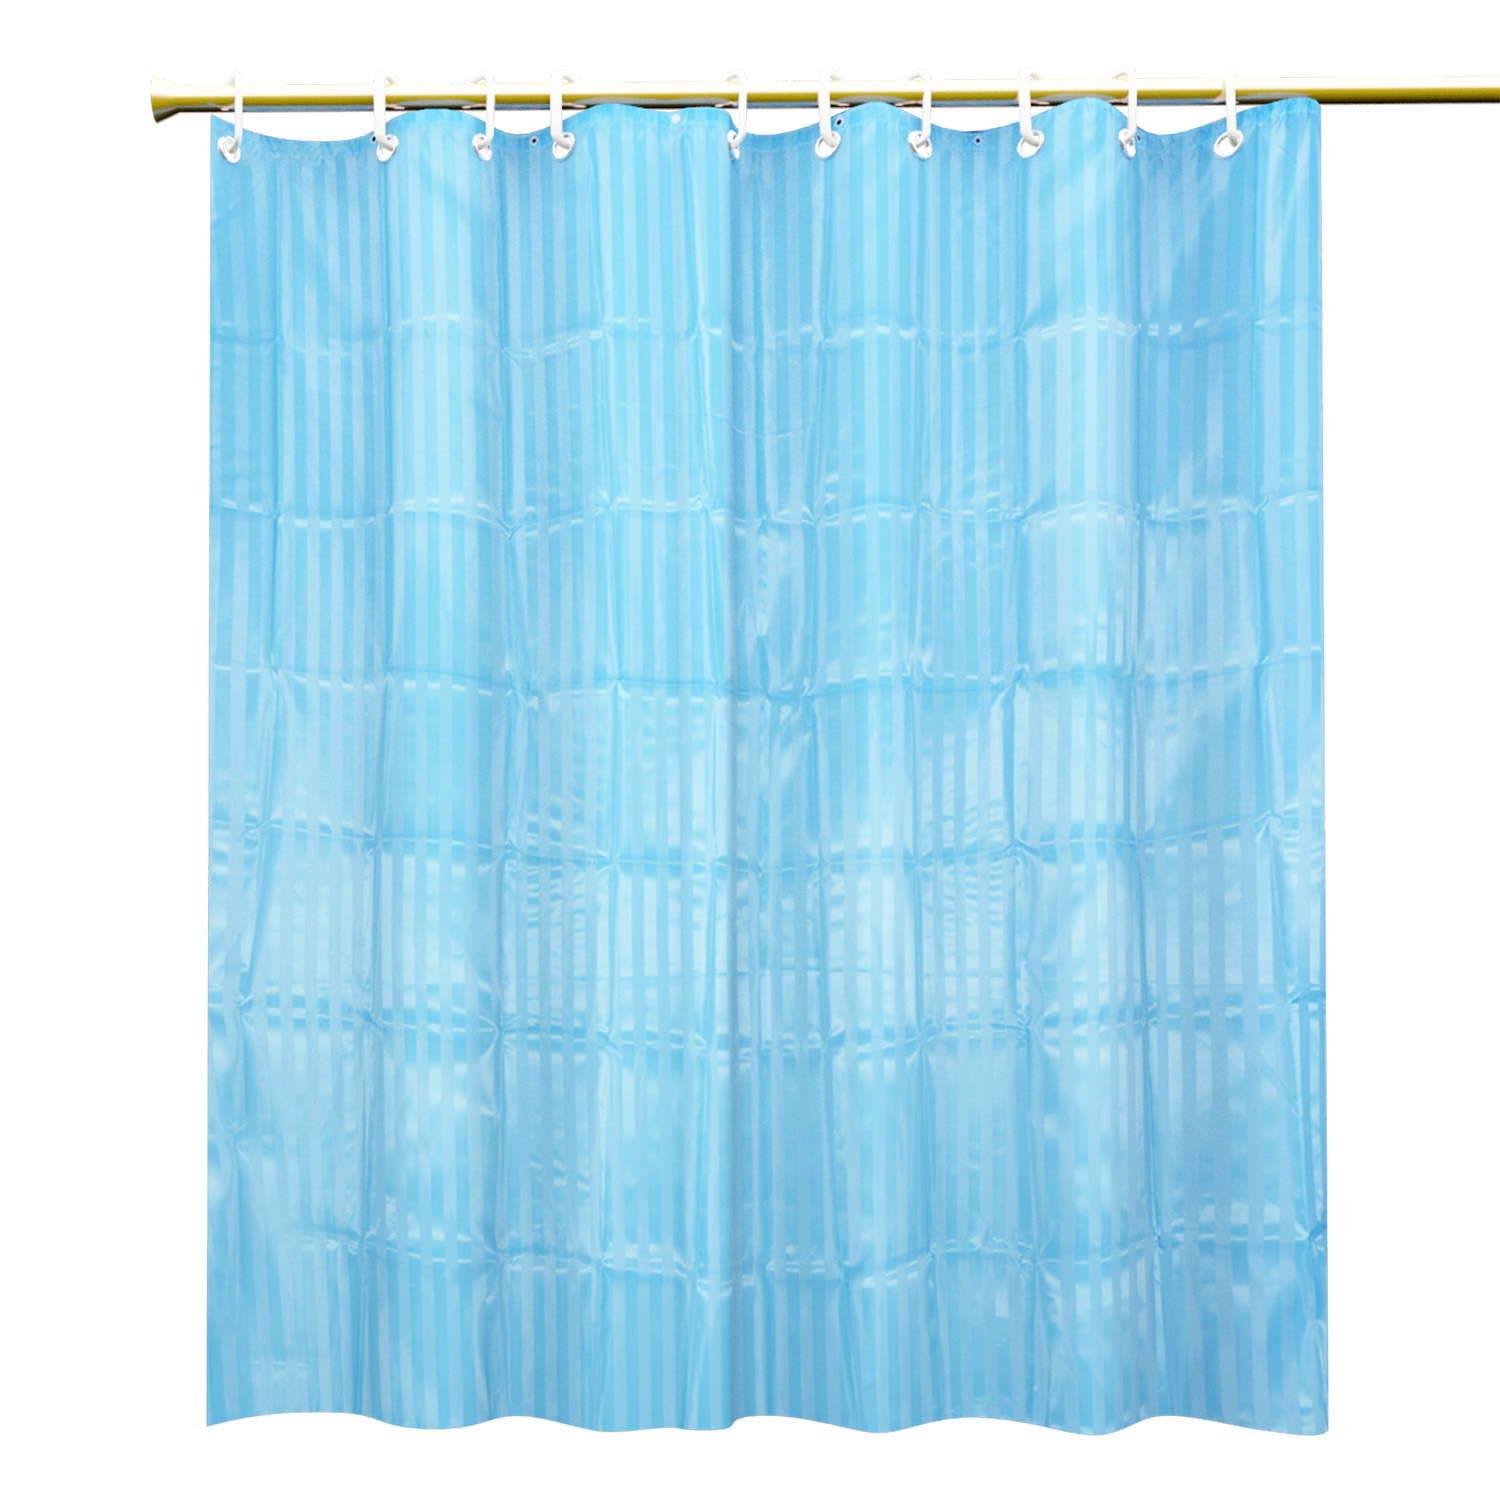 Kuber Industries 7 Feet Self Design Shower Curtain with 8 Hooks (Multi)